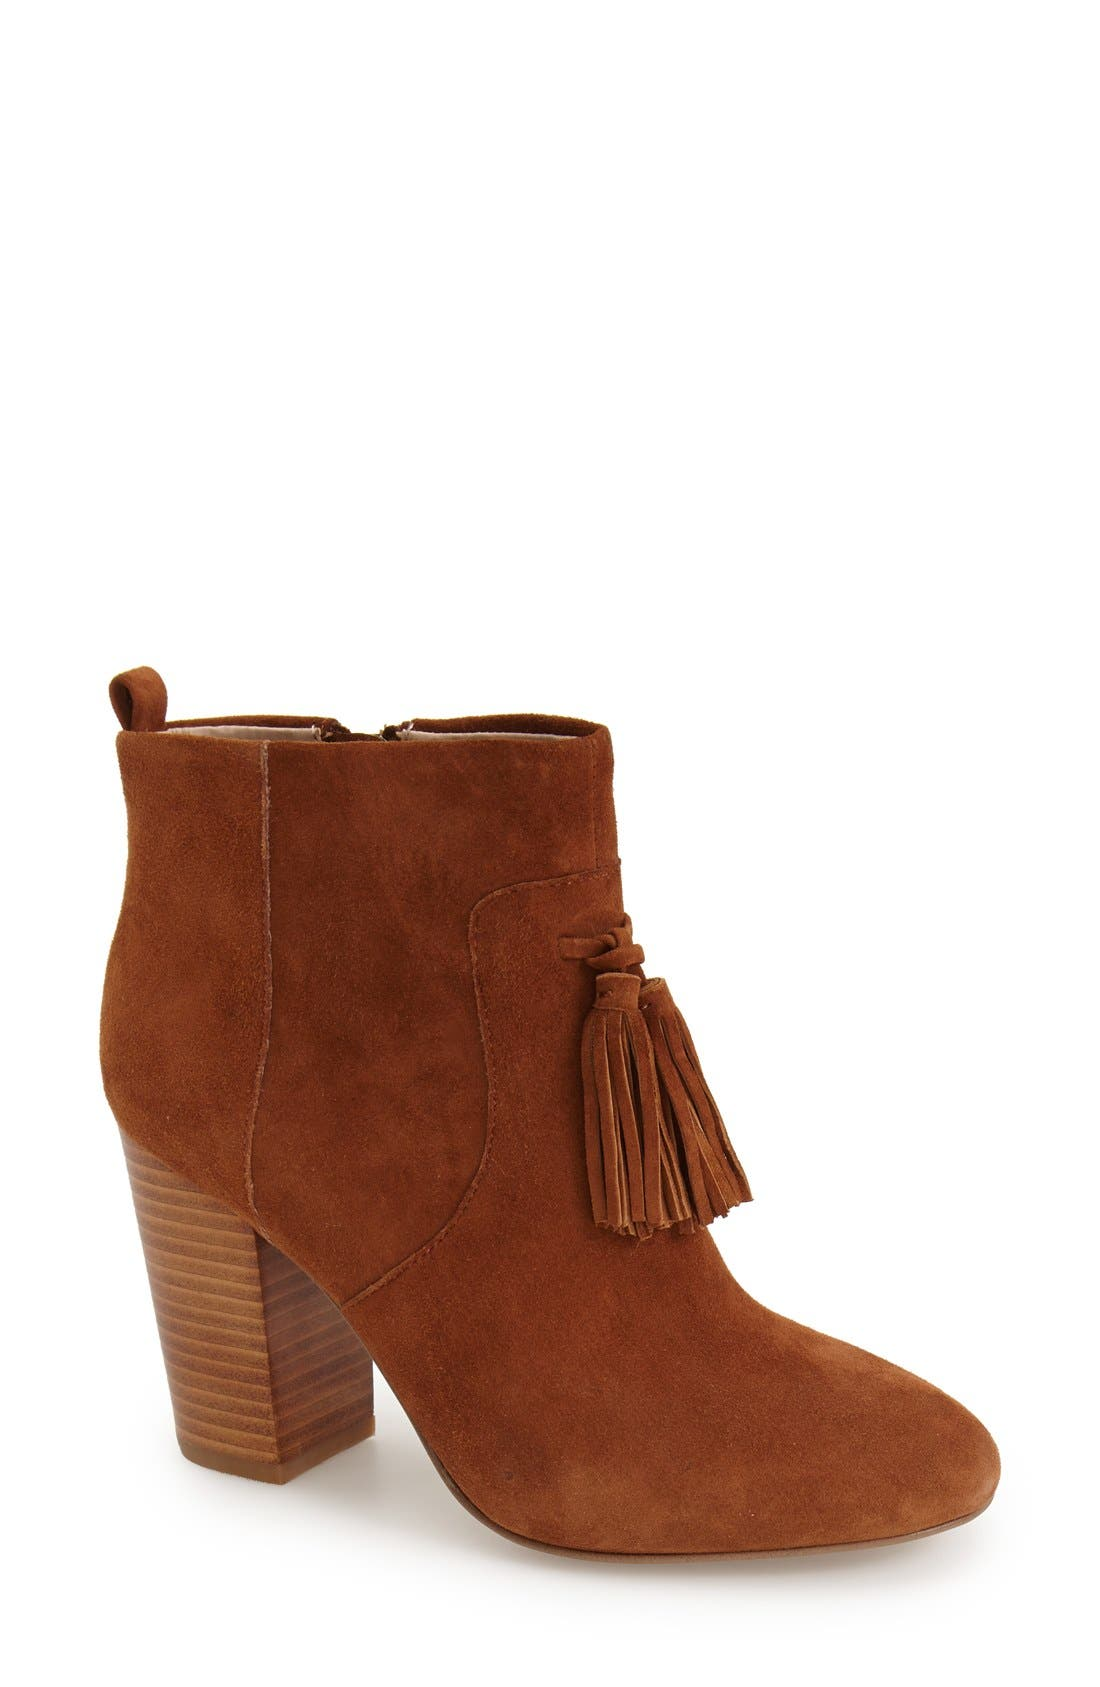 Main Image - French Connection 'Linds' Tassel Ankle Bootie (Women)